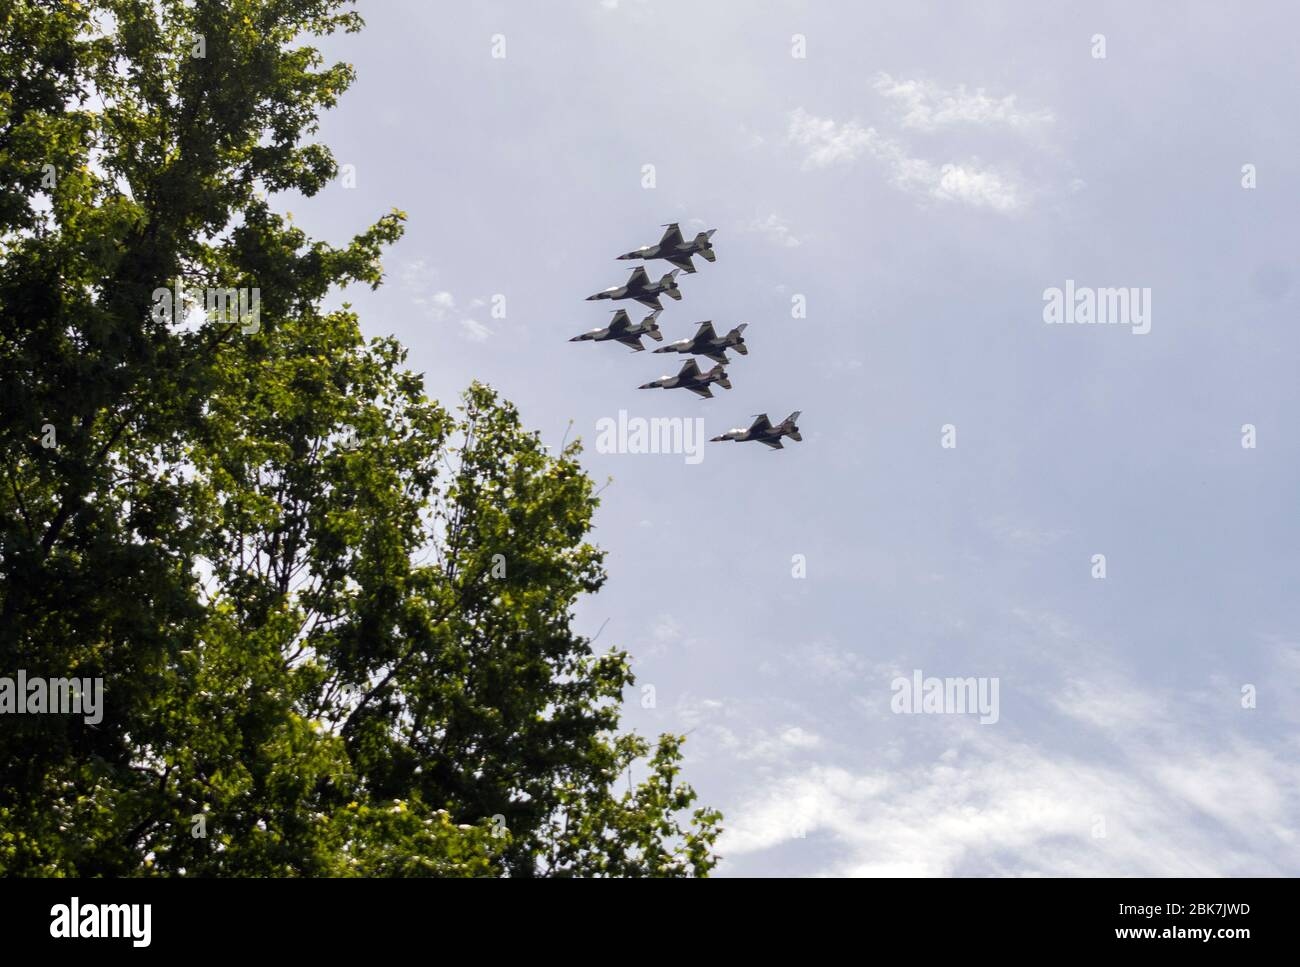 The Thunderbirds, the United States Air Force's aerobatic flight demonstration team, which are comprised of six F-16C Fighting Falcon aircraft, conduct a flyover with the US Navy Blue Angels, in the Washington, DC metro area in Silver Spring, Maryland on Saturday, May 2, 2020. The flyover salutes first responders in the battle against the COVID-19 Coronavirus pandemic.Credit: Ron Sachs/CNP | usage worldwide Stock Photo